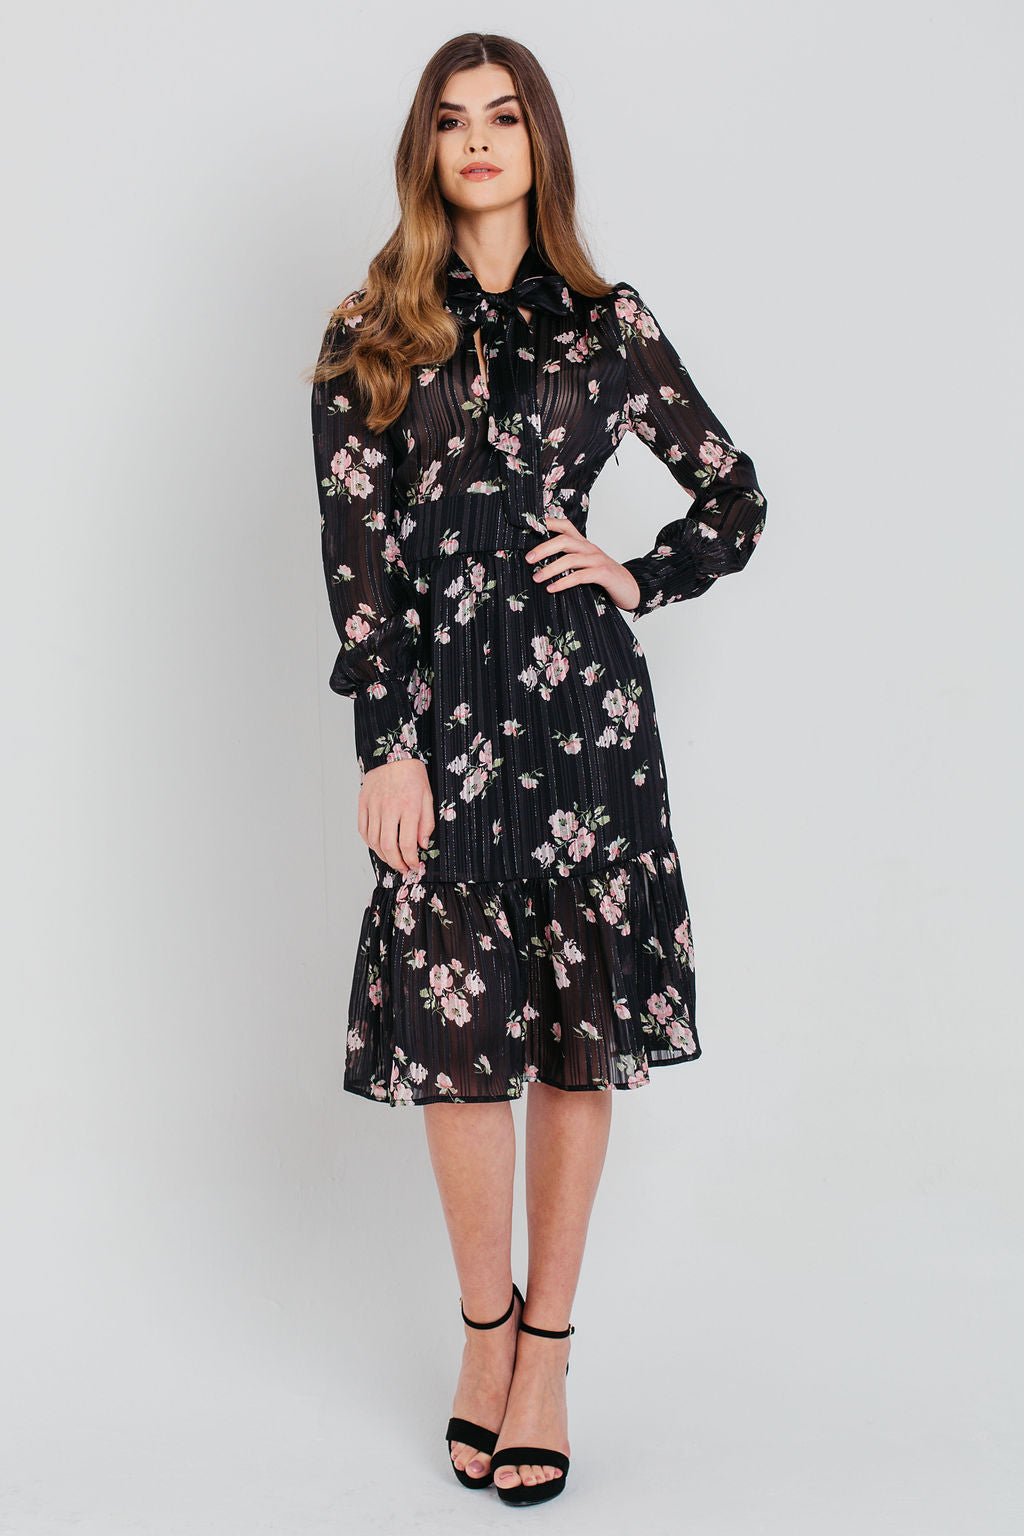 Black Floral Chiffon Tie Neck Shirt Dress